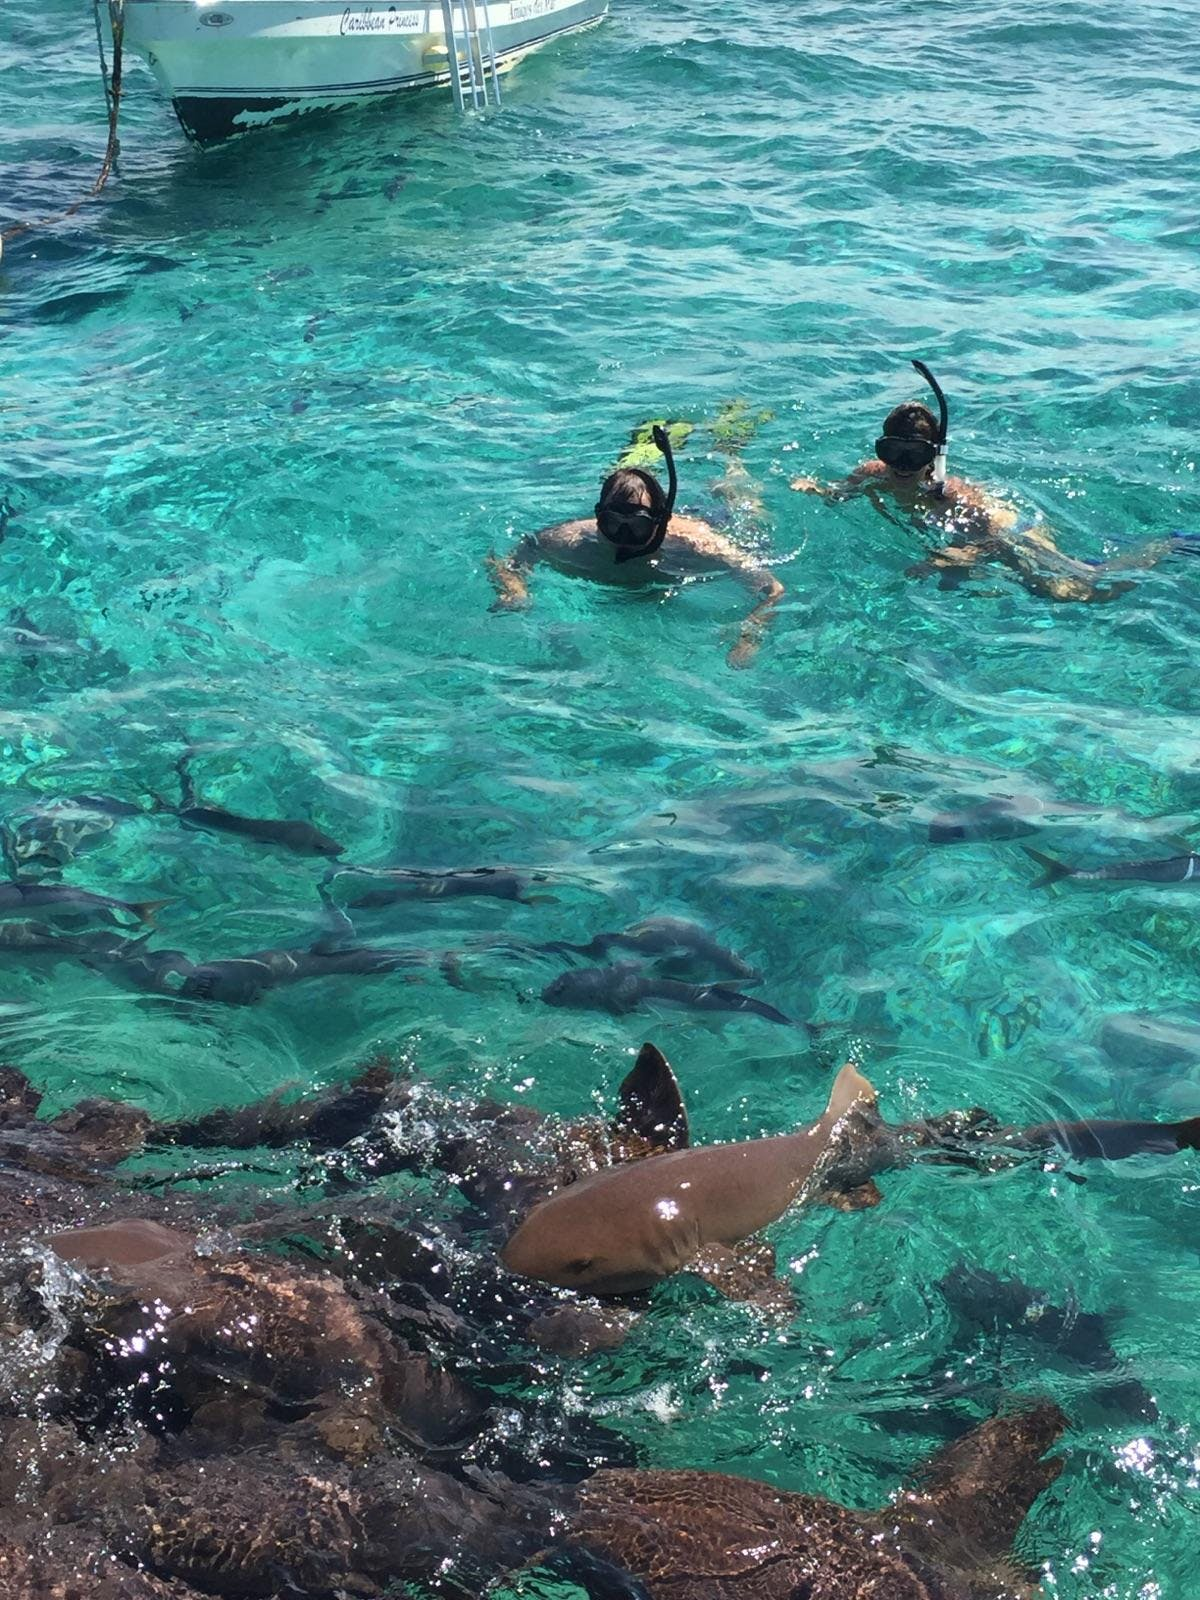 Shark Ray Alley - Swimming with sharks!